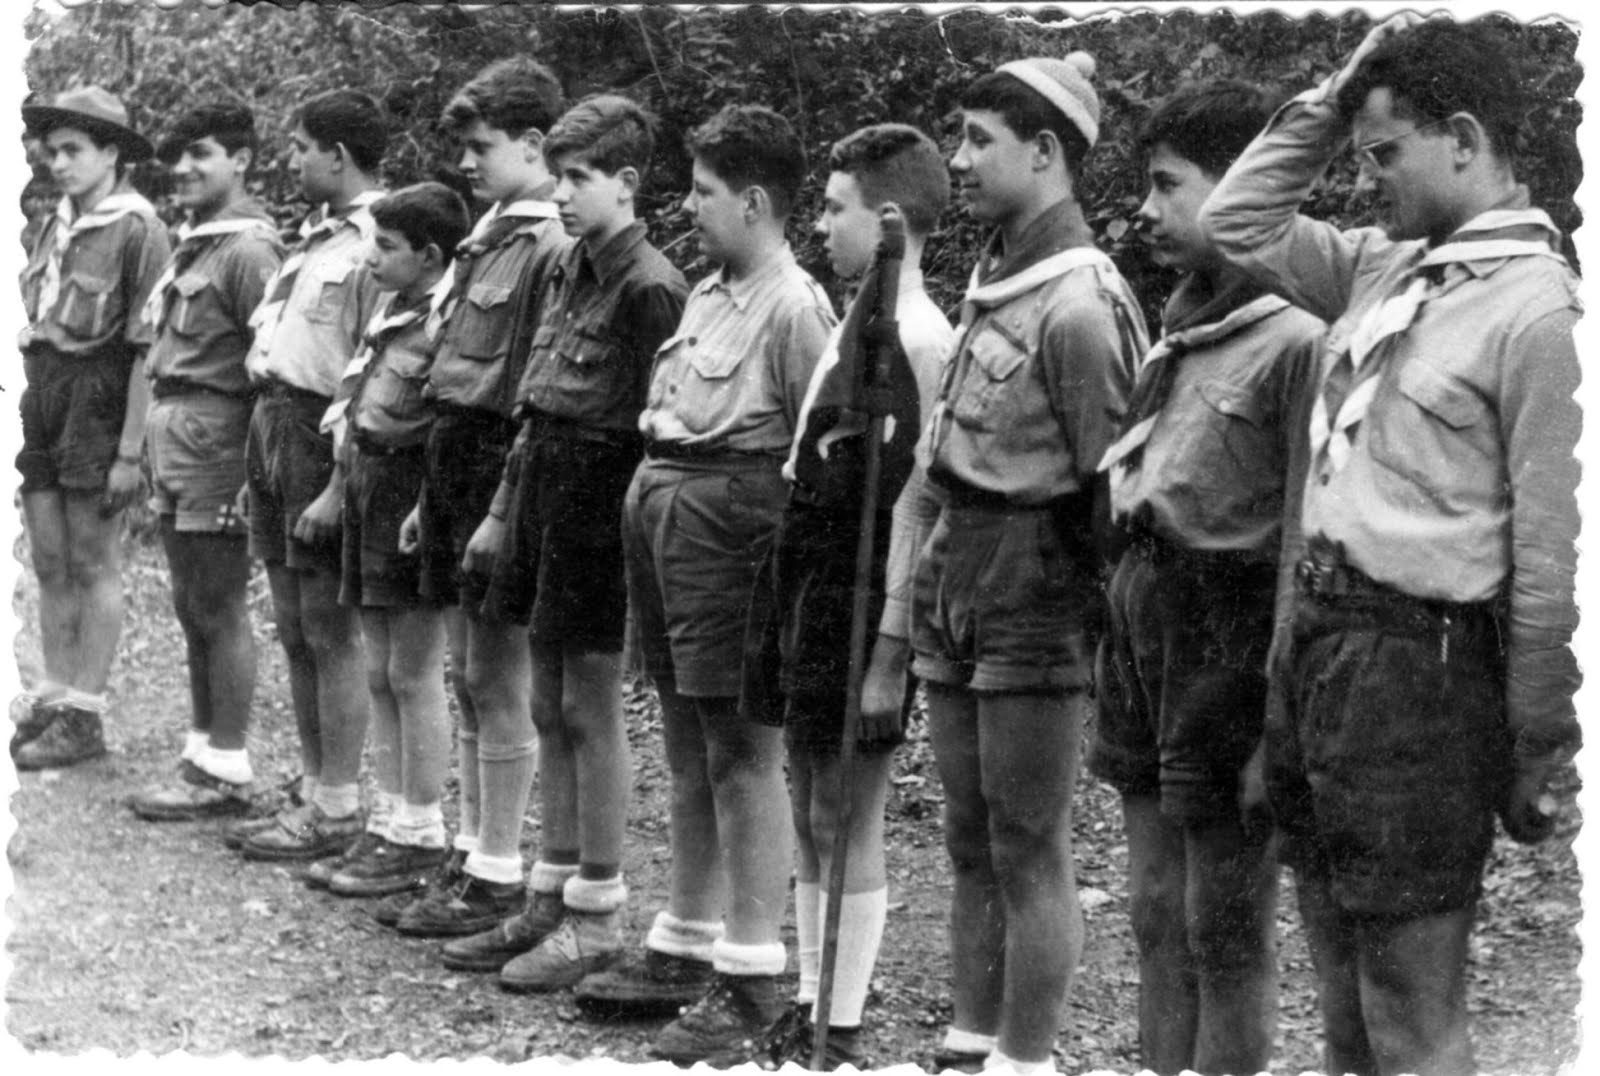 Boys Scouts de Catalunya any 1950-60